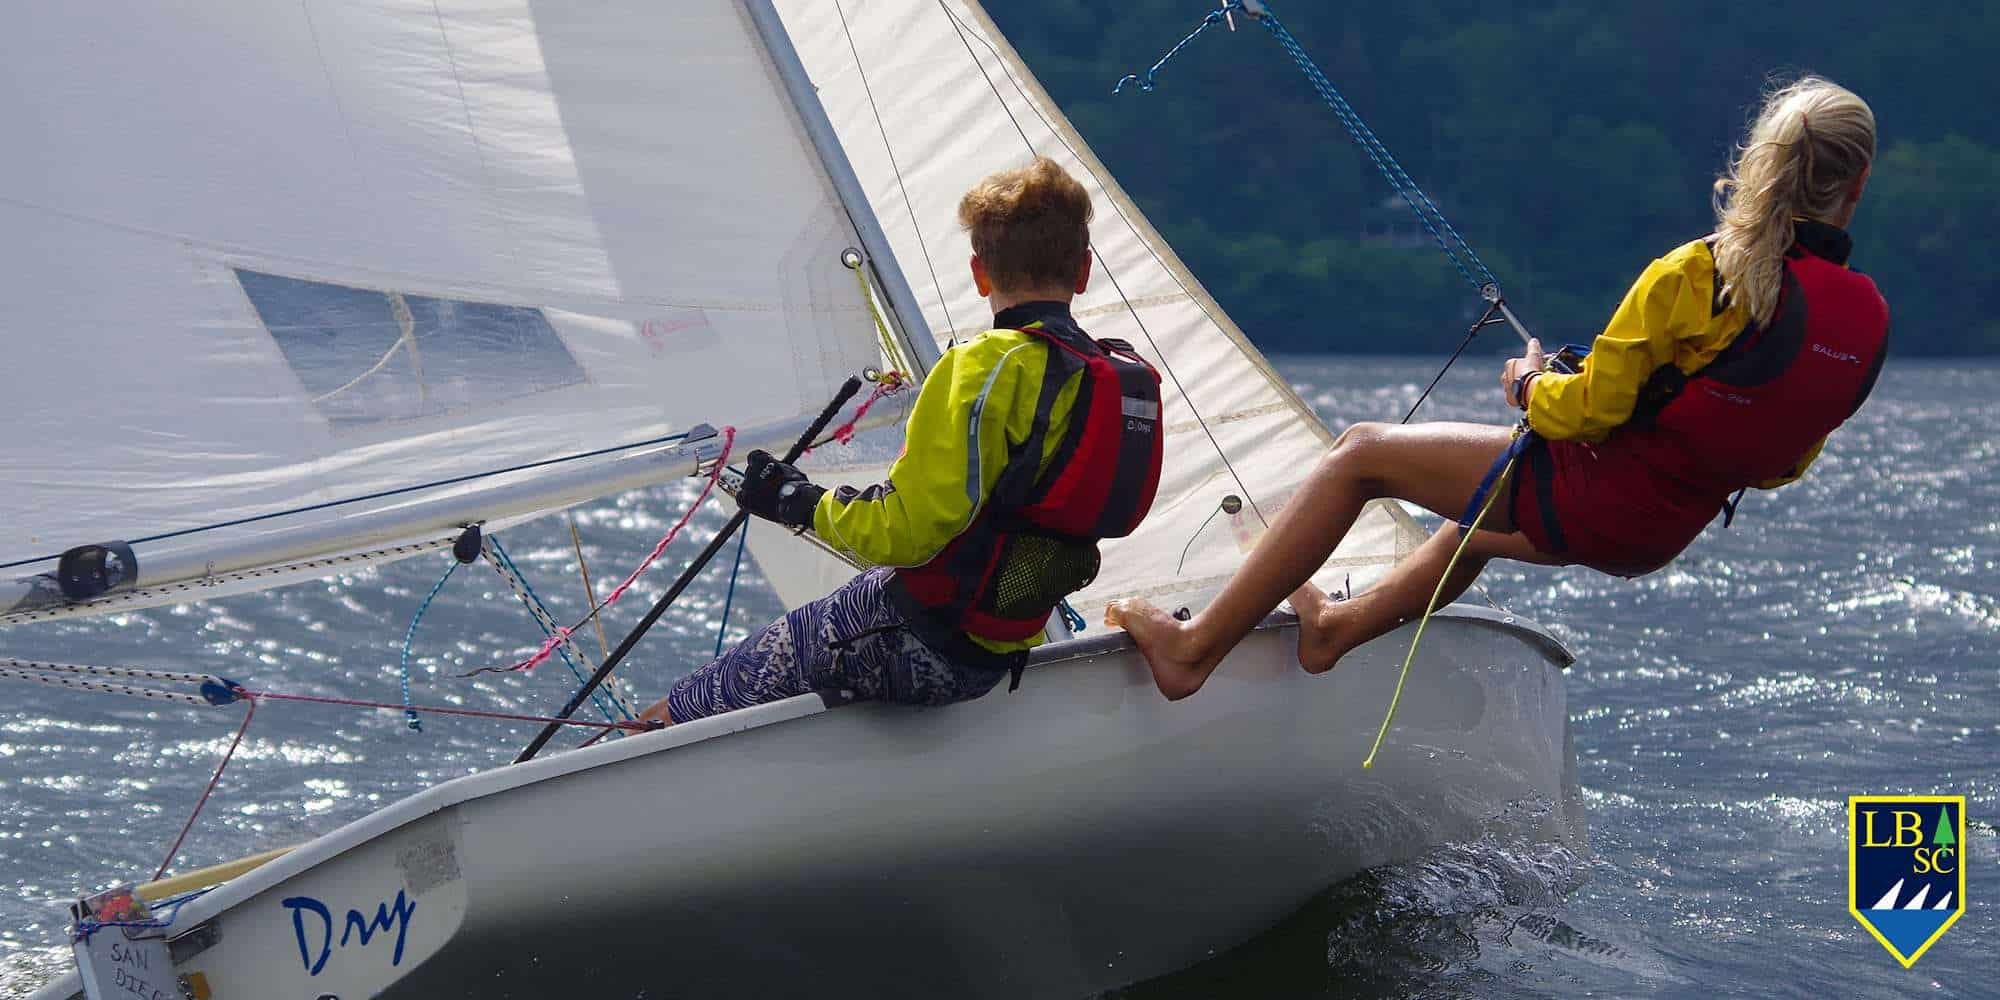 Lake of Bays Sailing Club - Open sail race